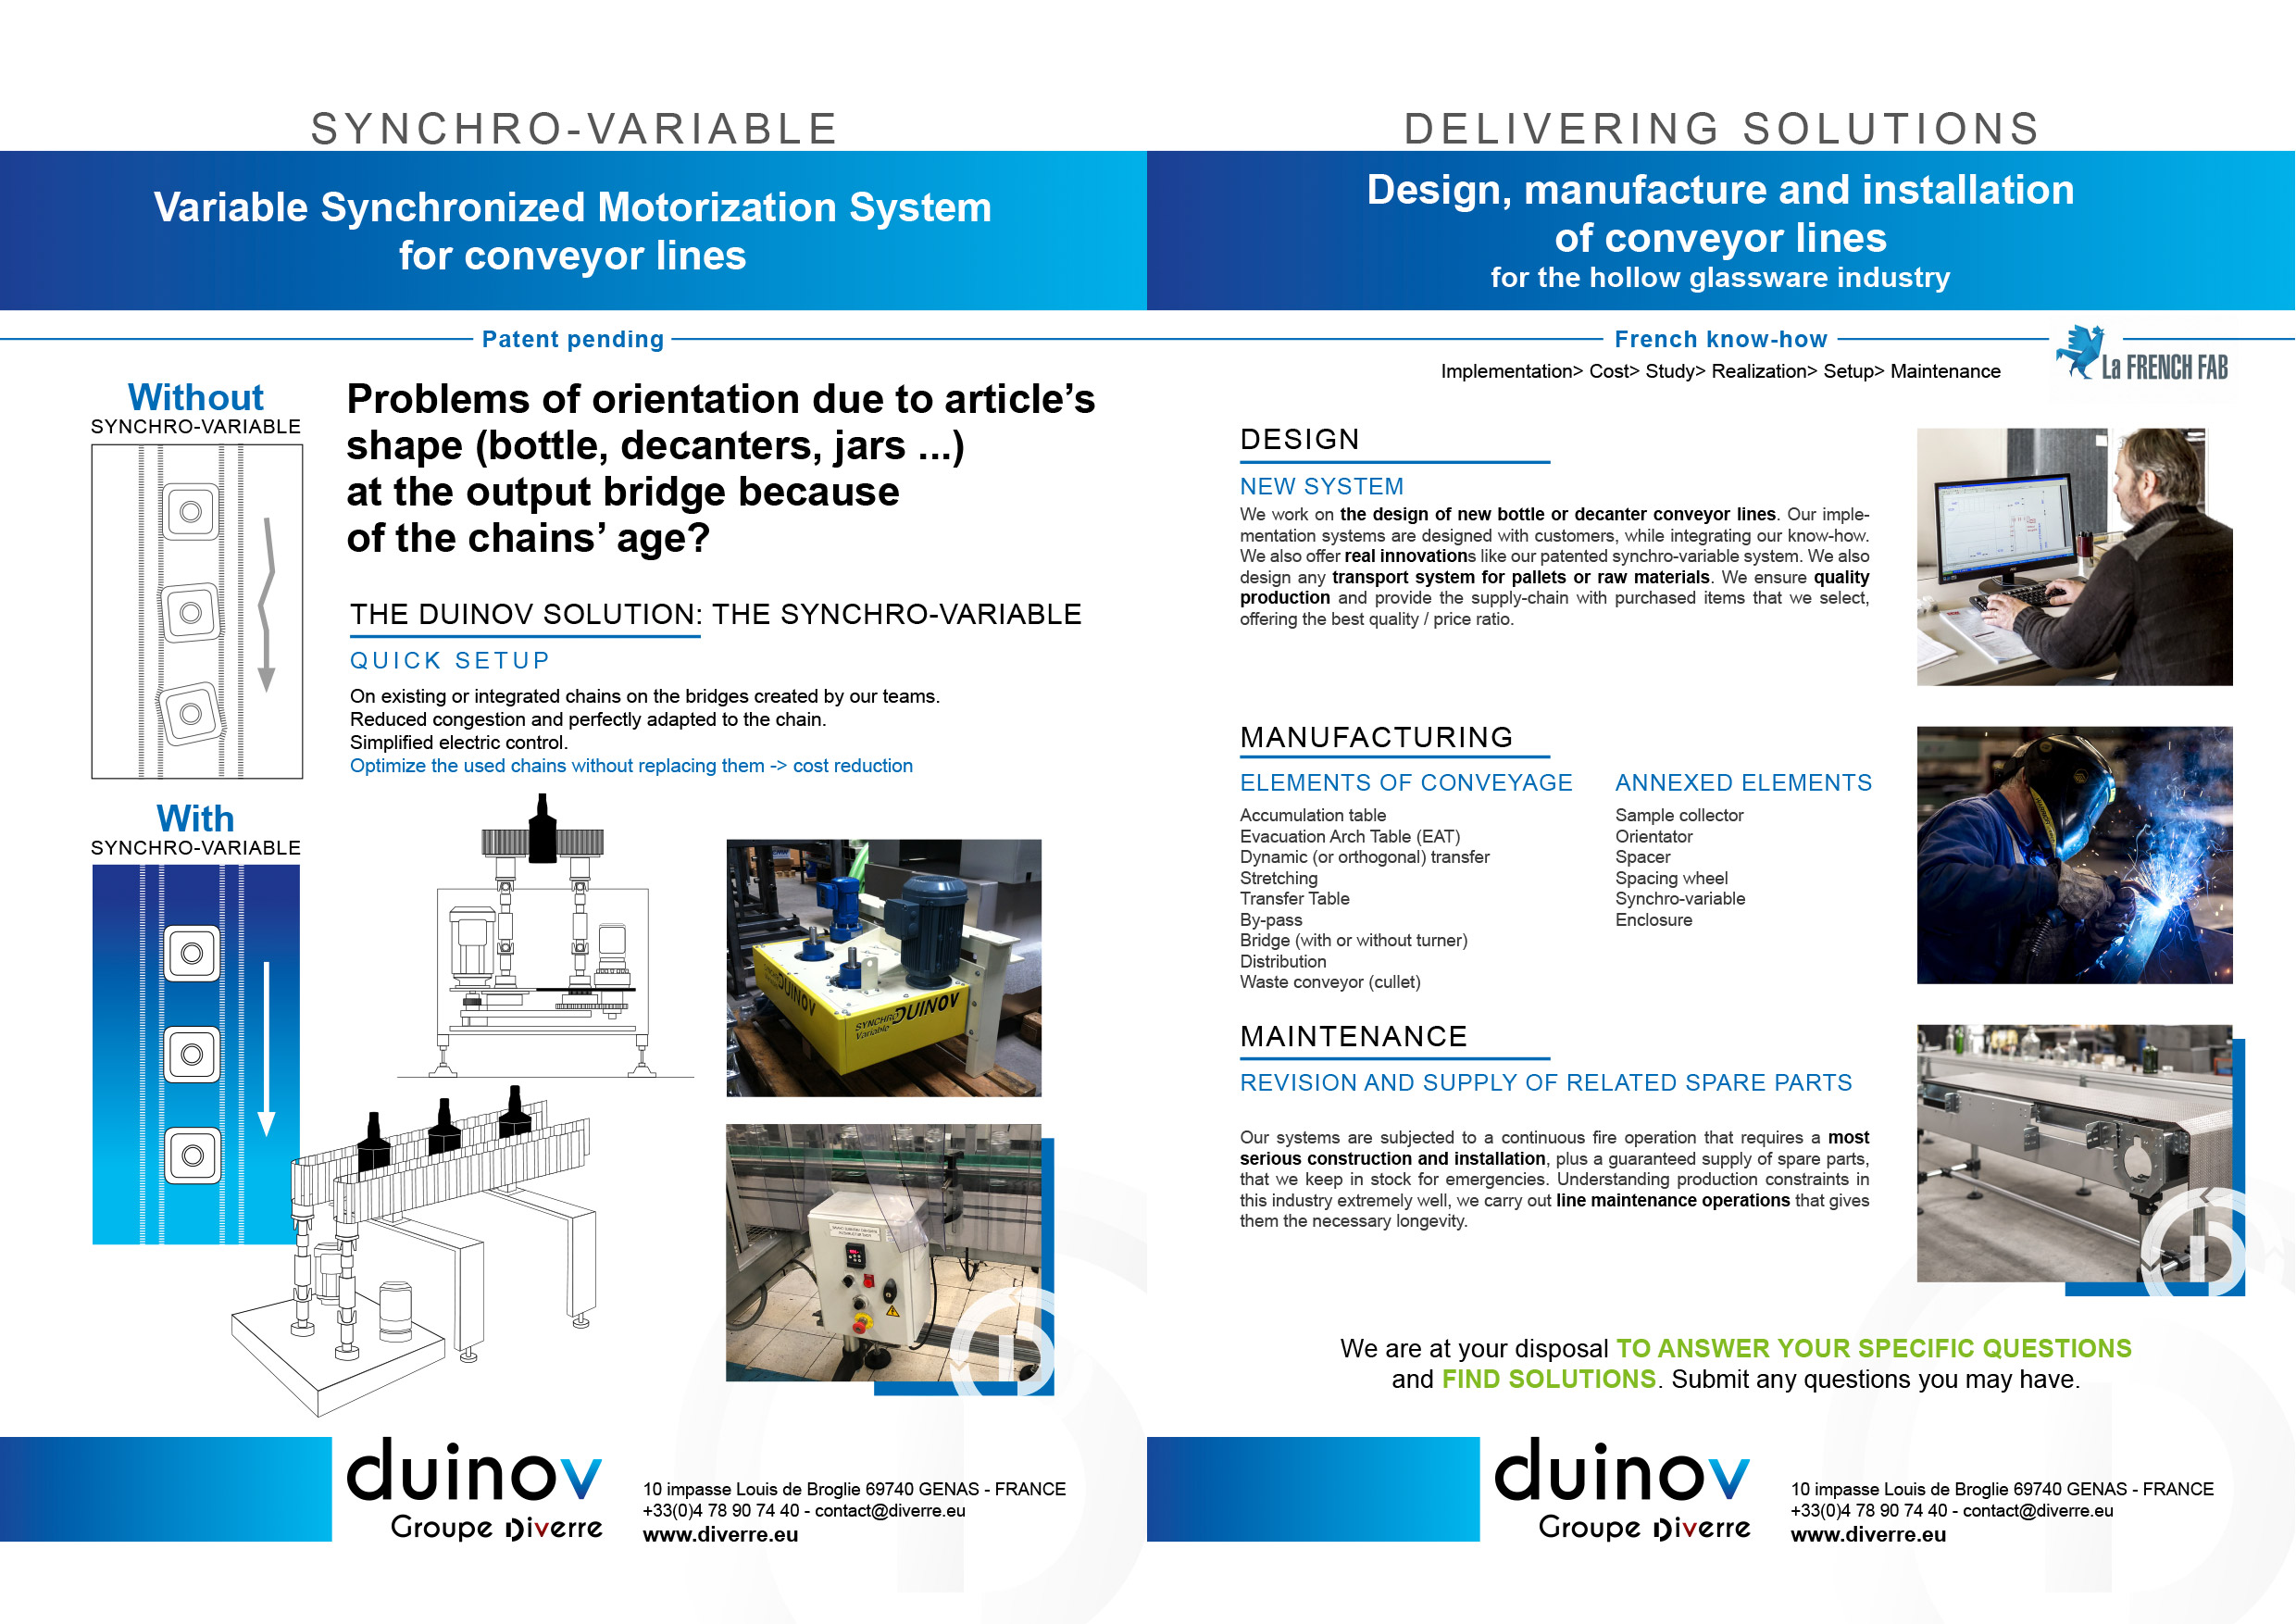 THE DUINOV SOLUTION: THE SYNCHRO-VARIABLE